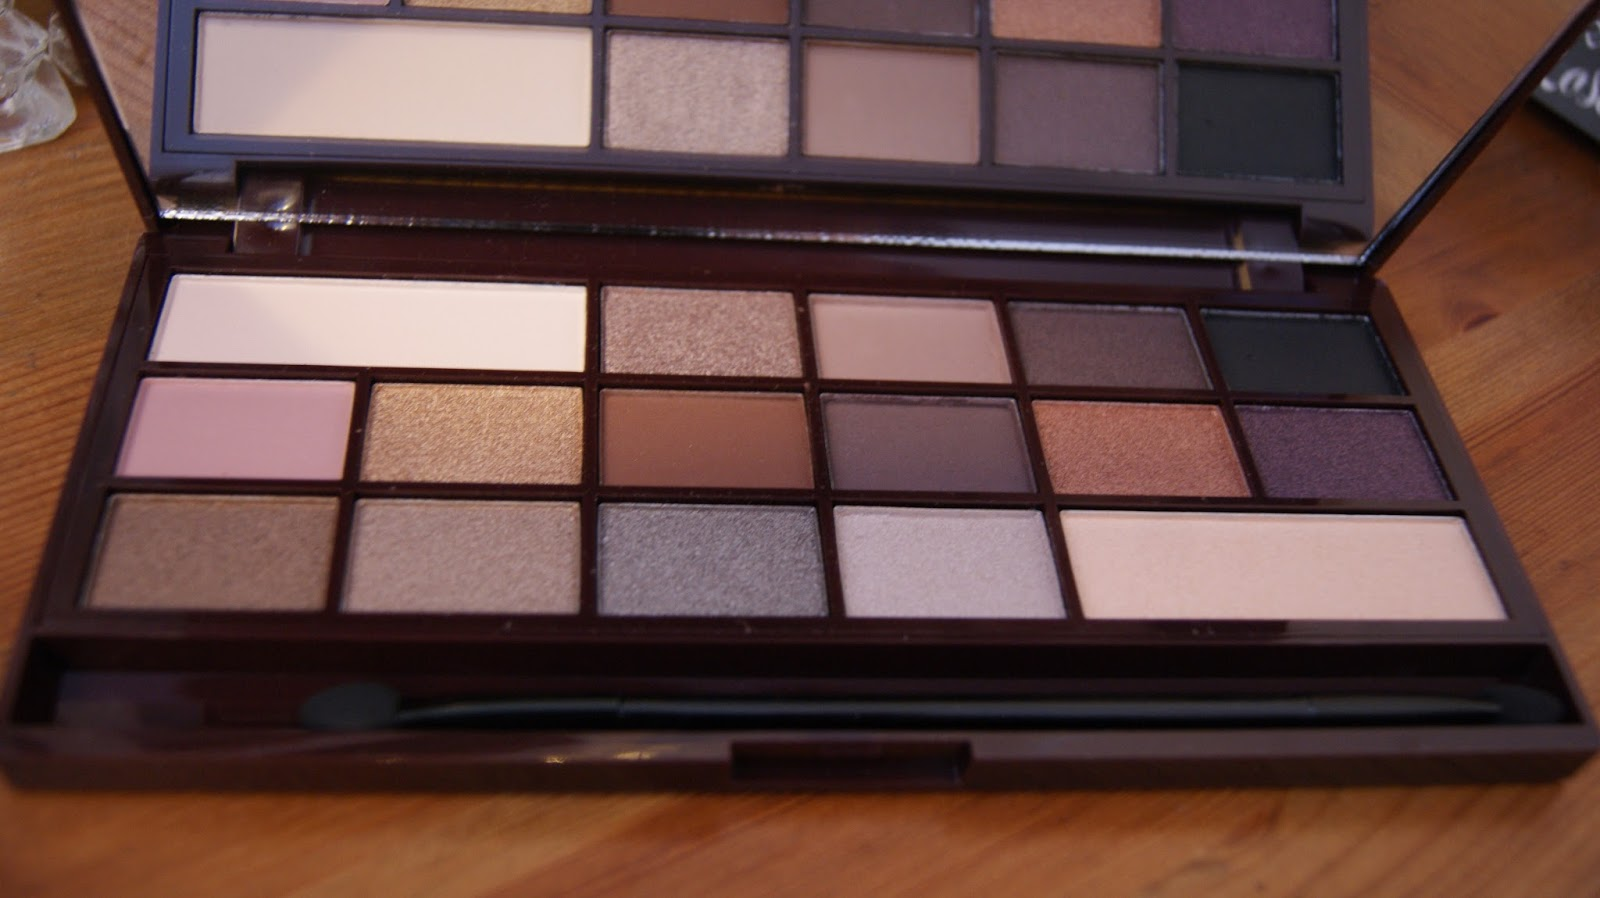 Makeup Revolution Death By Chocolate Palette Eyeshadow Colours